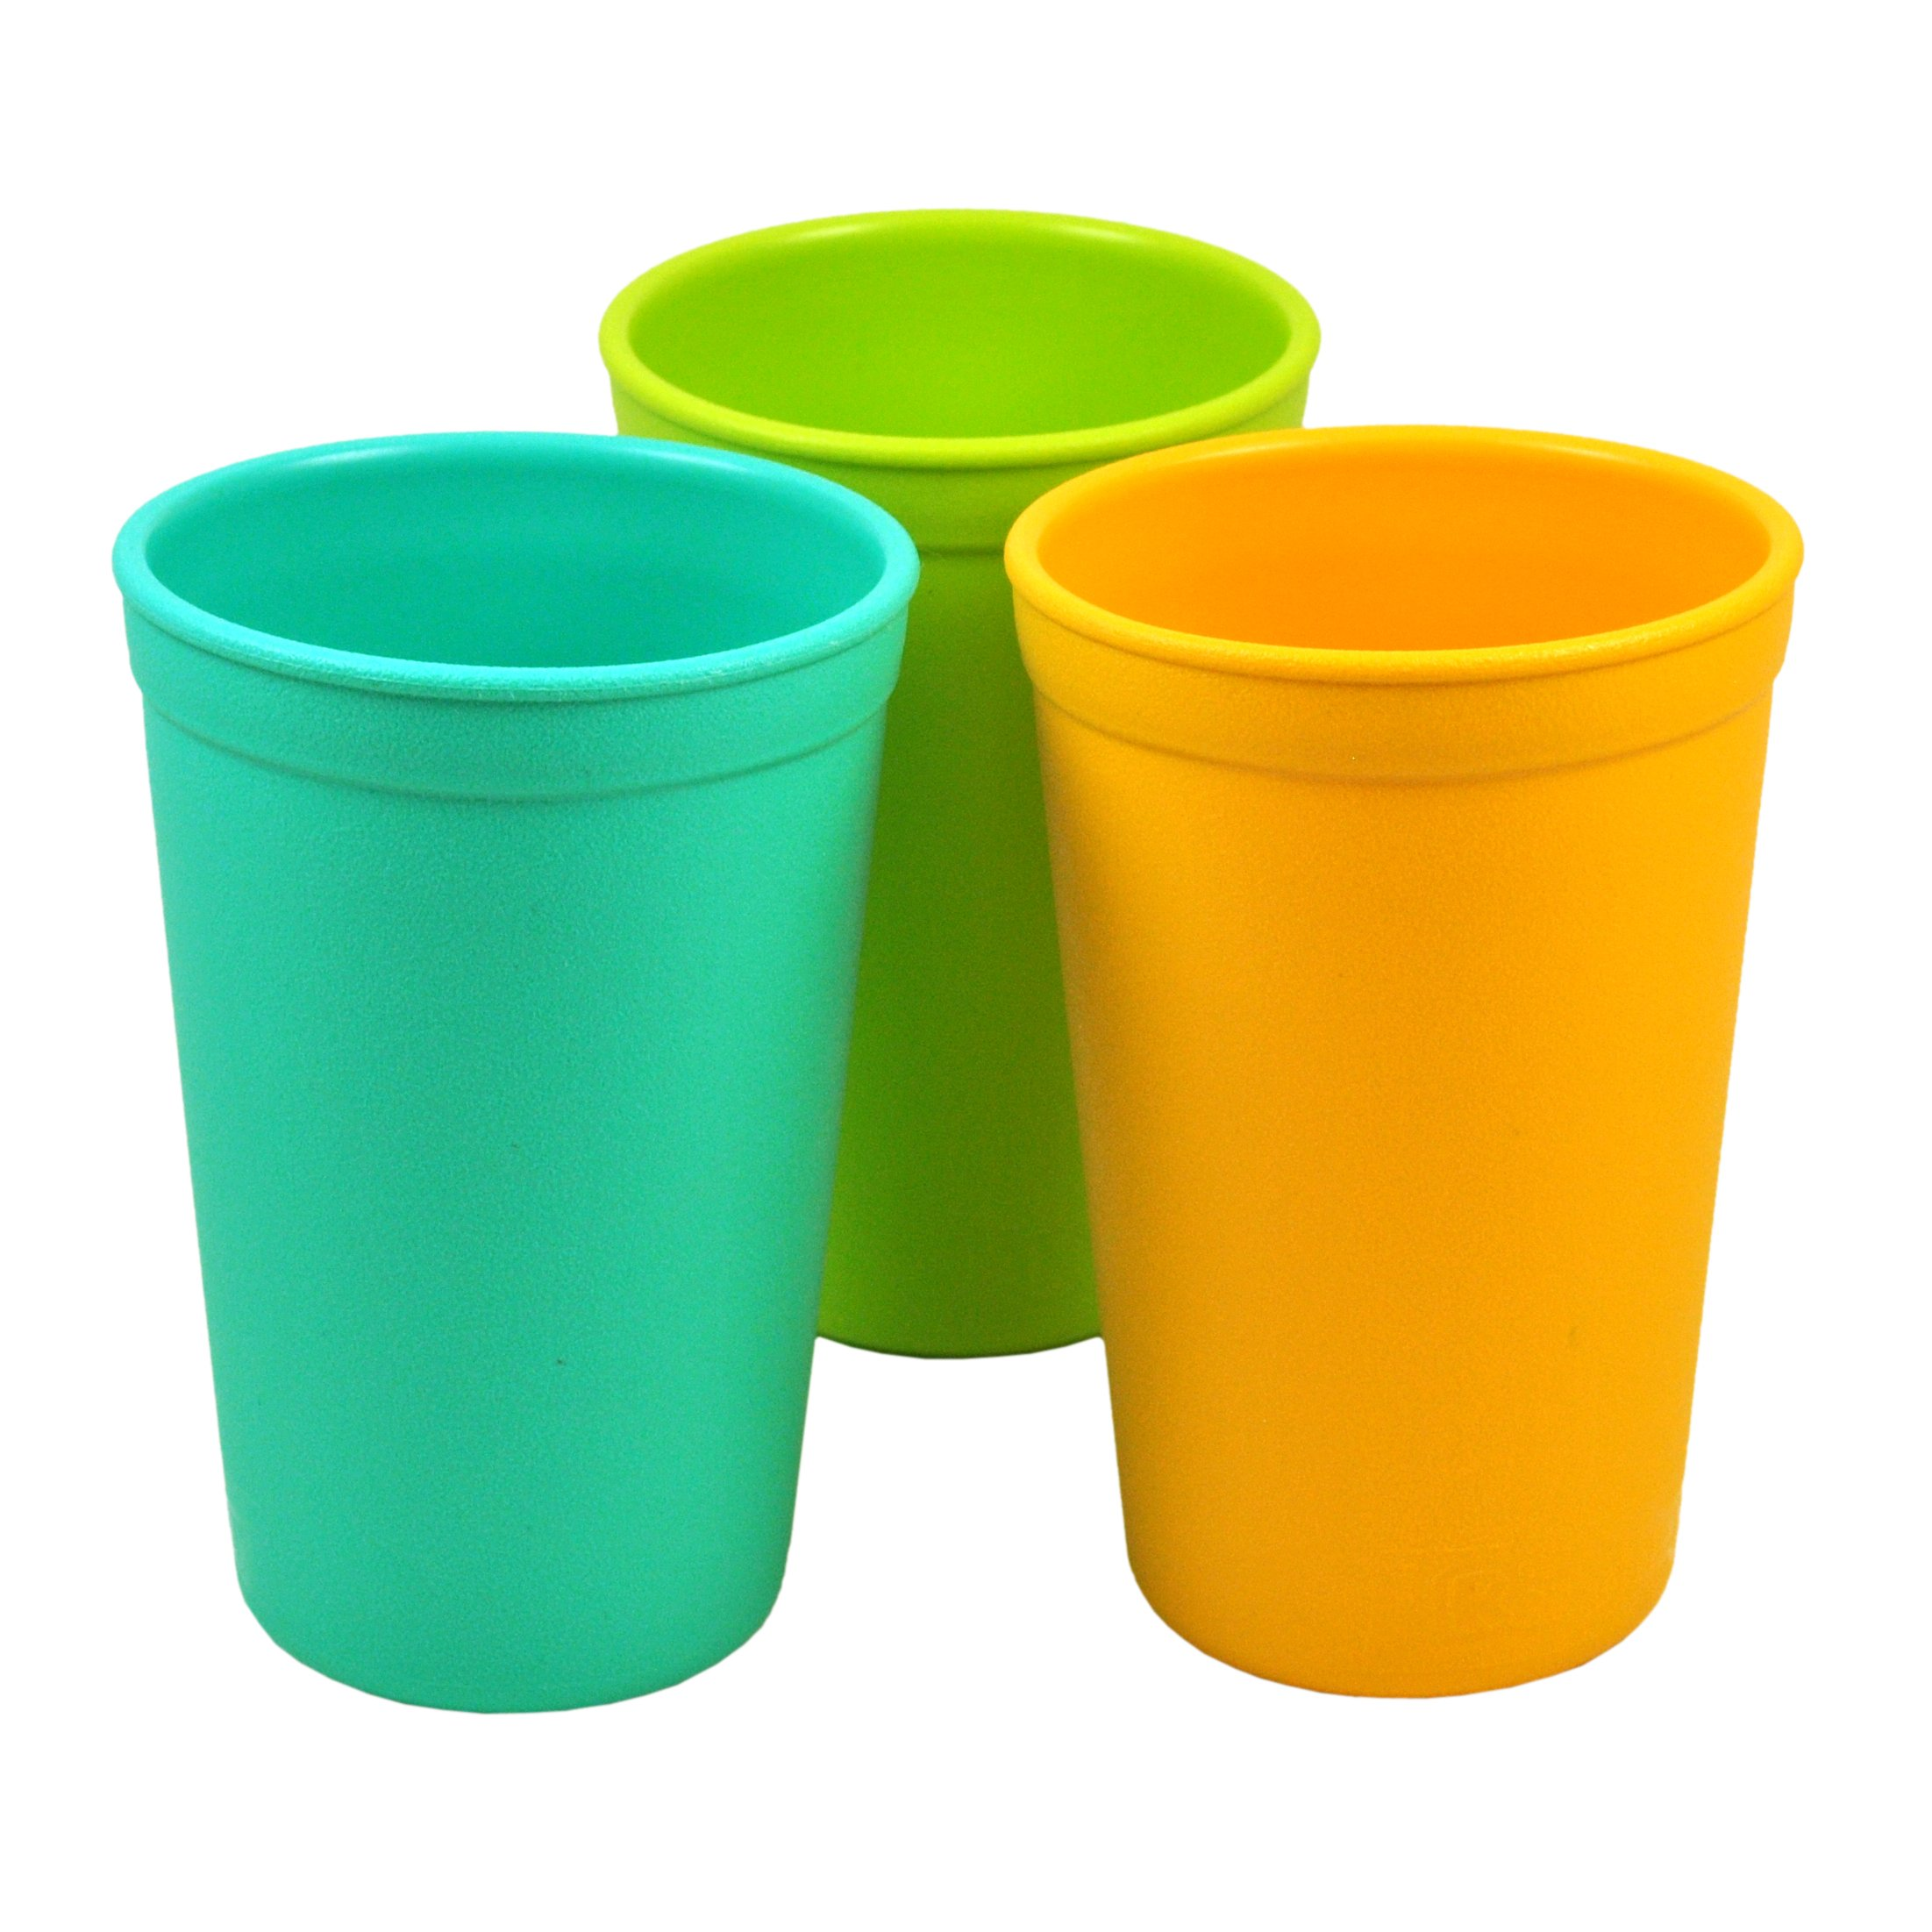 Re-Play 3pk - 9oz. Drinking Cups   Made in USA from Eco Friendly Heavyweight Recycled Milk Jugs - Virtually Indestructible   for All Ages   Aqua, Lime Green, Sunny Yellow   Aqua Asst.